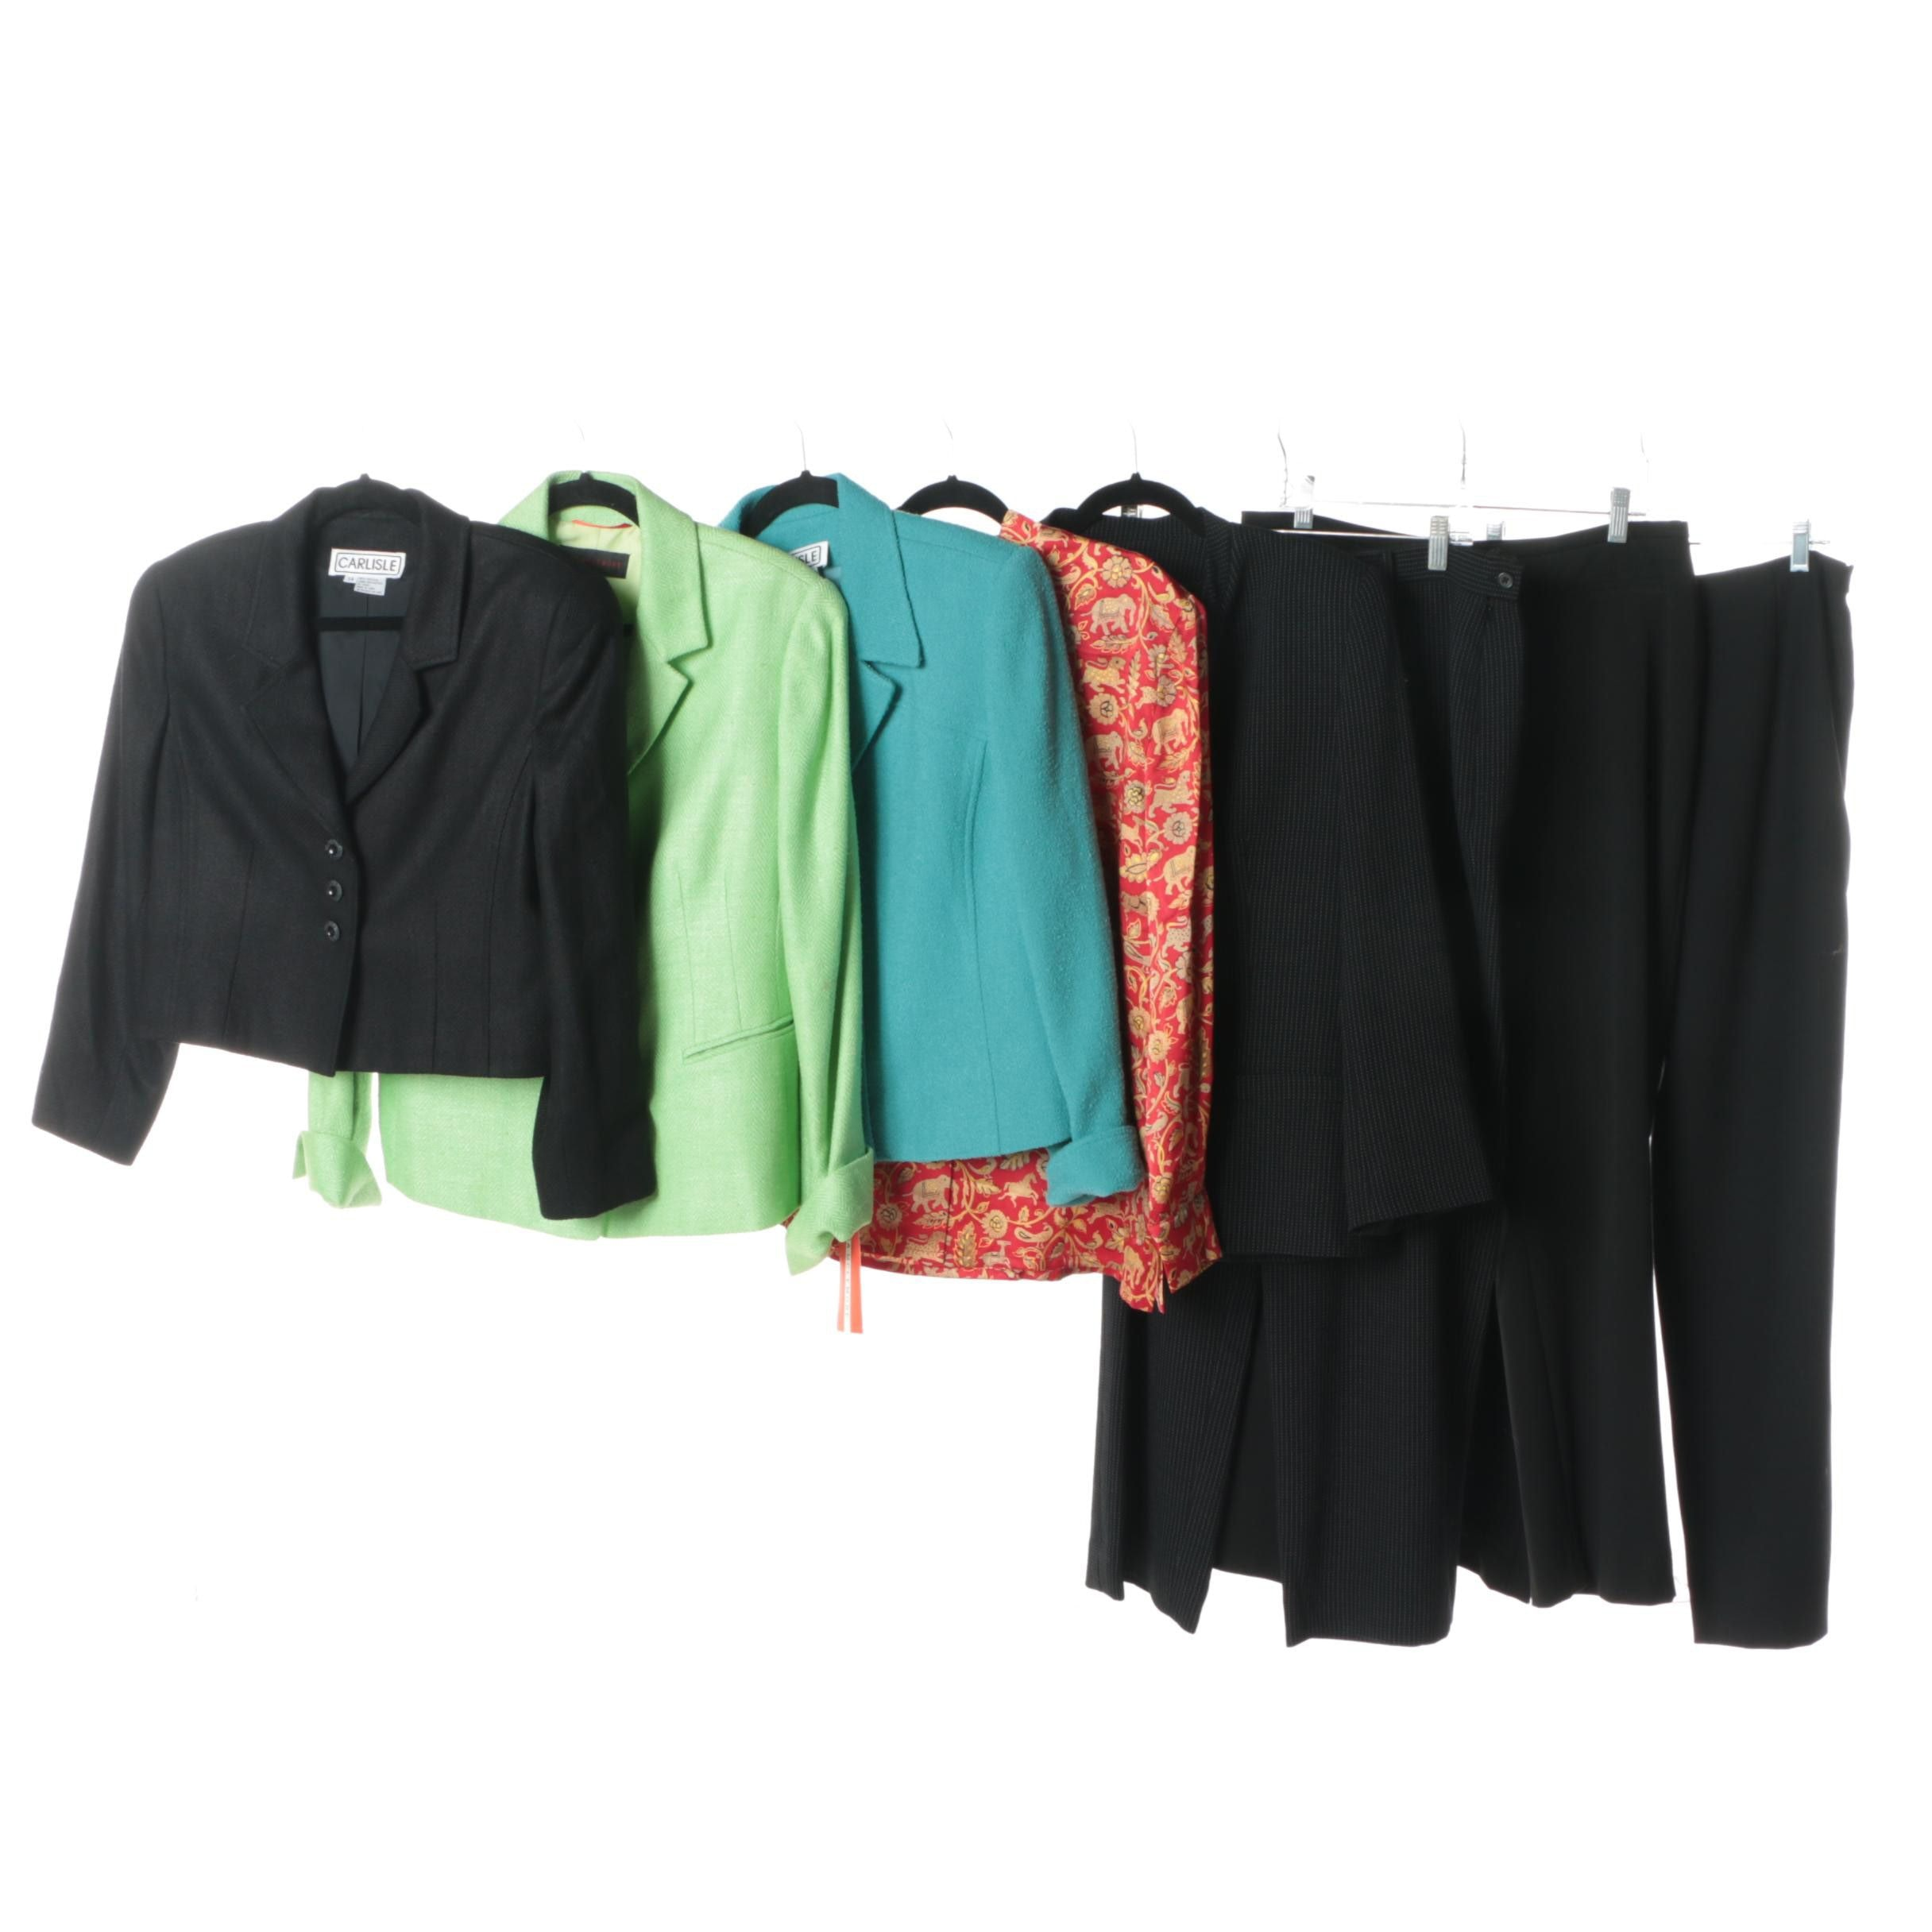 Women's Carlisle and Nina McLemore Pantsuits, Blazers and Blouse